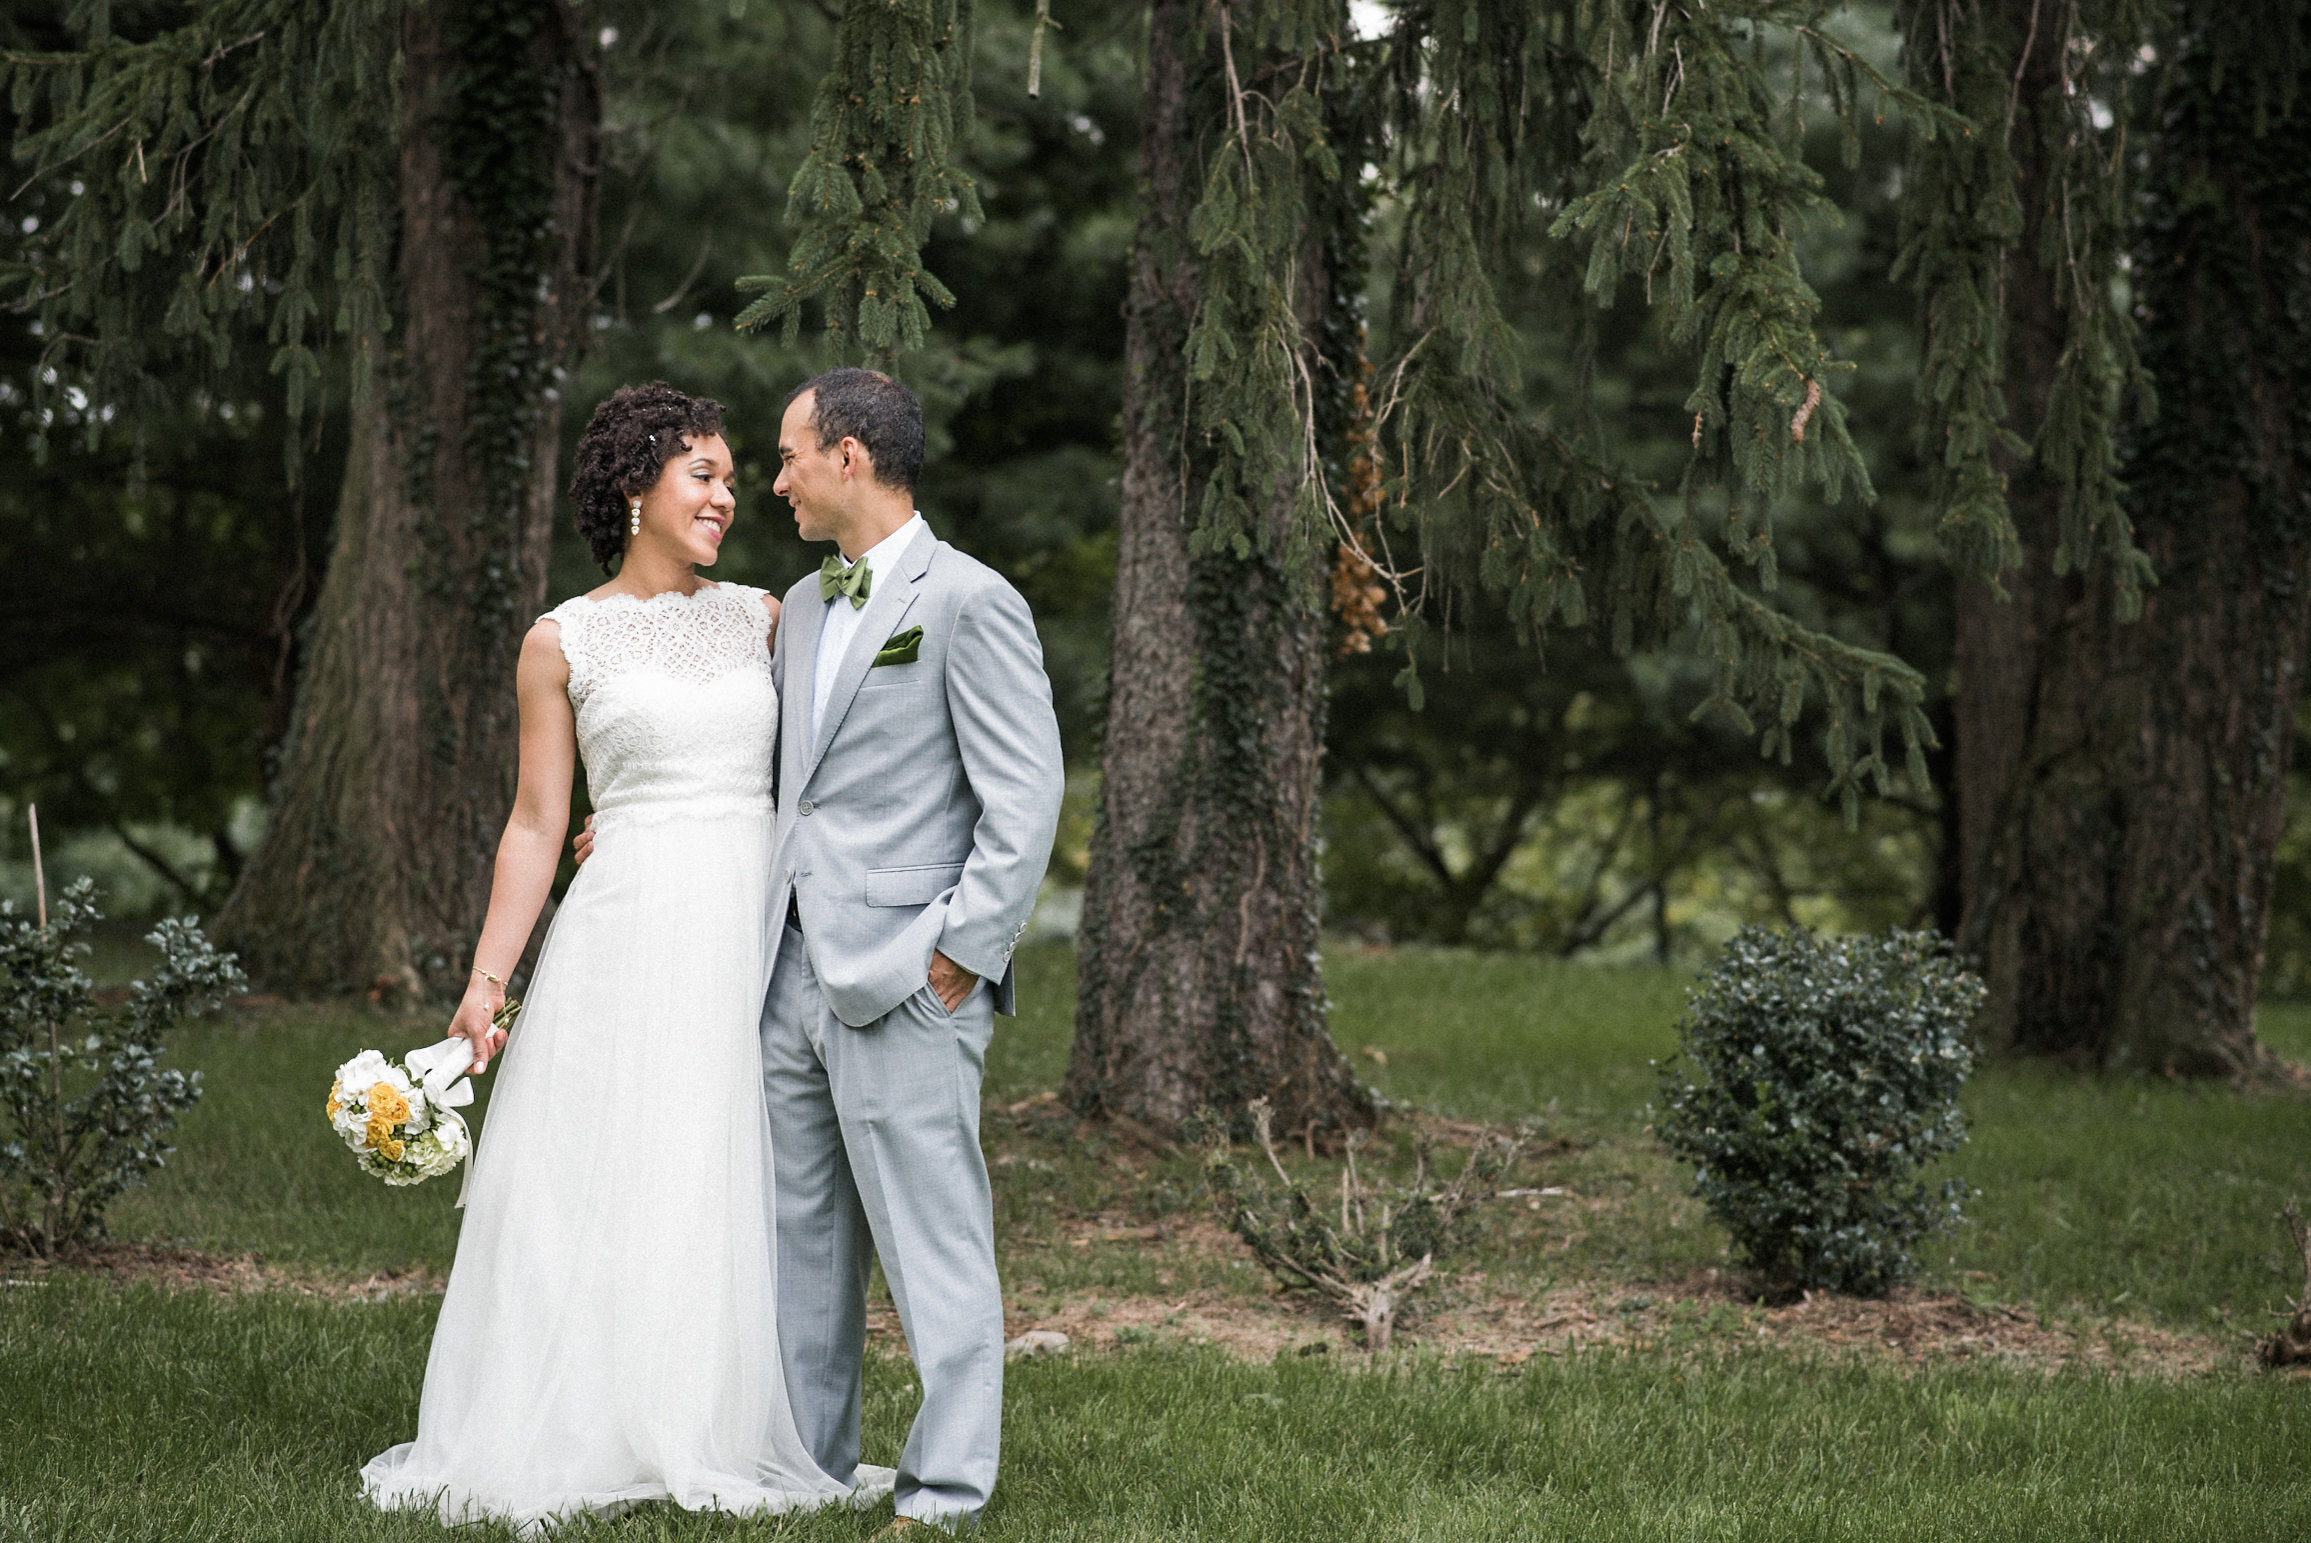 Bride and groom in forest setting